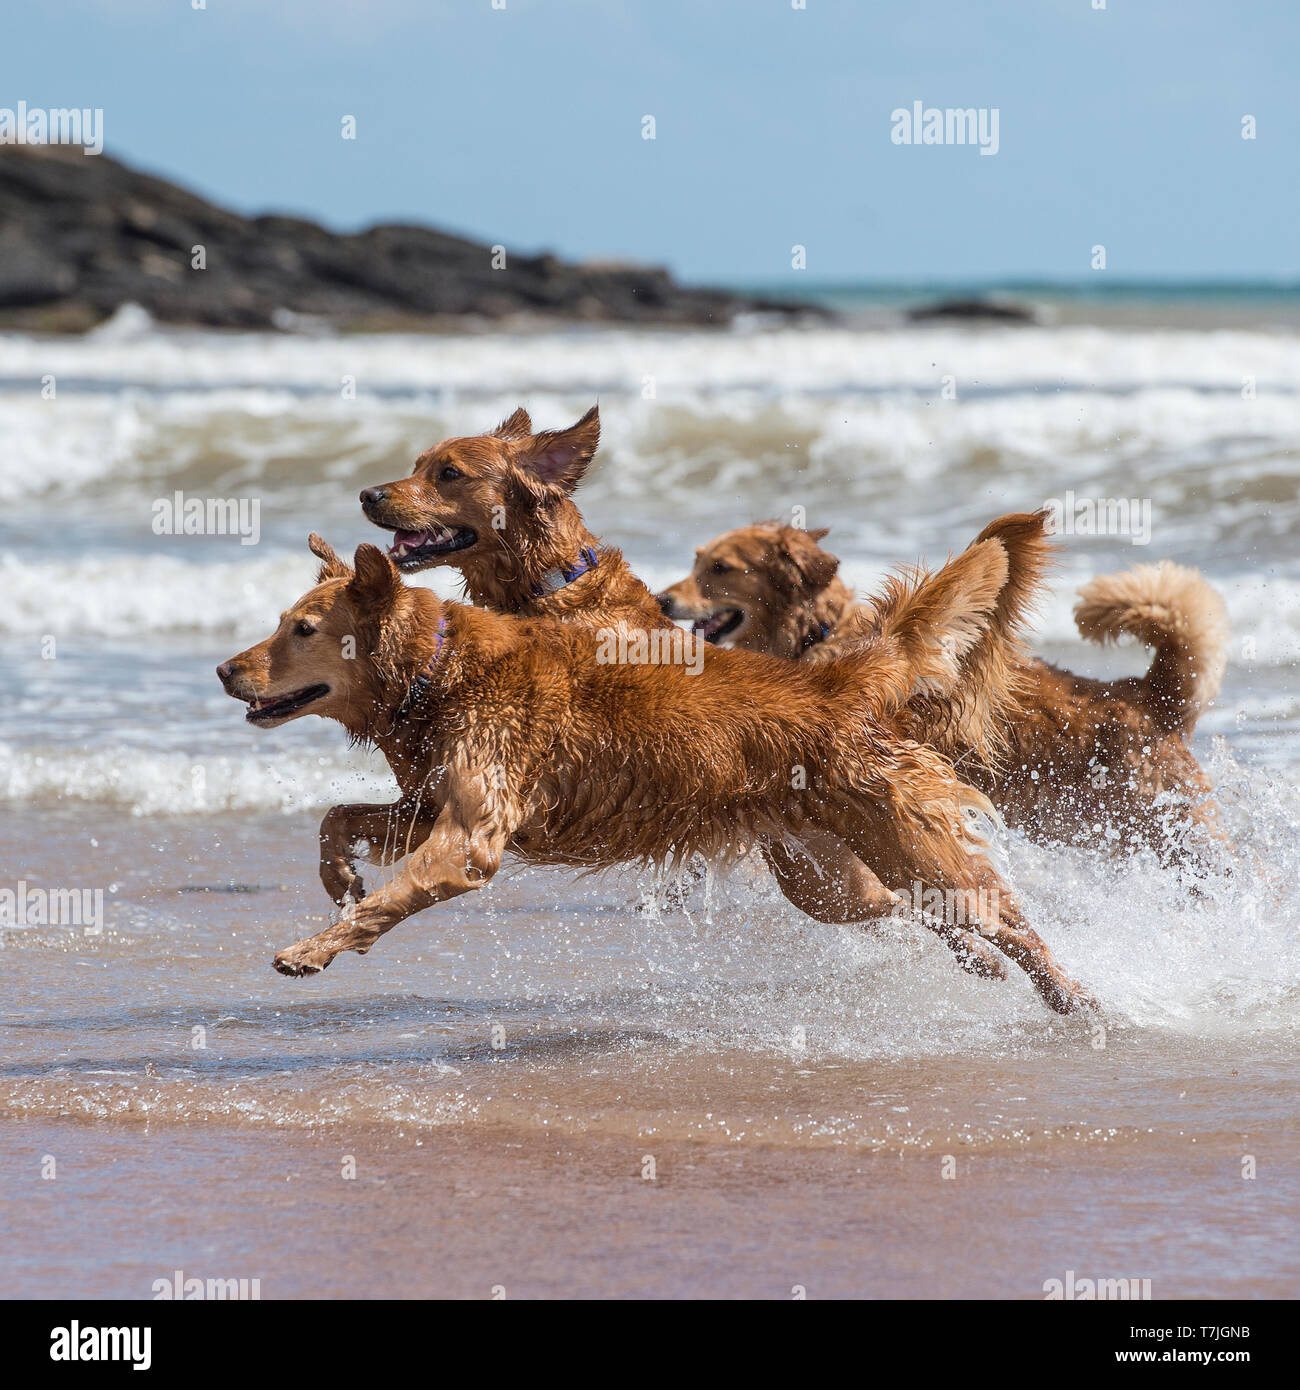 golden retrievers playing in the sea - Stock Image